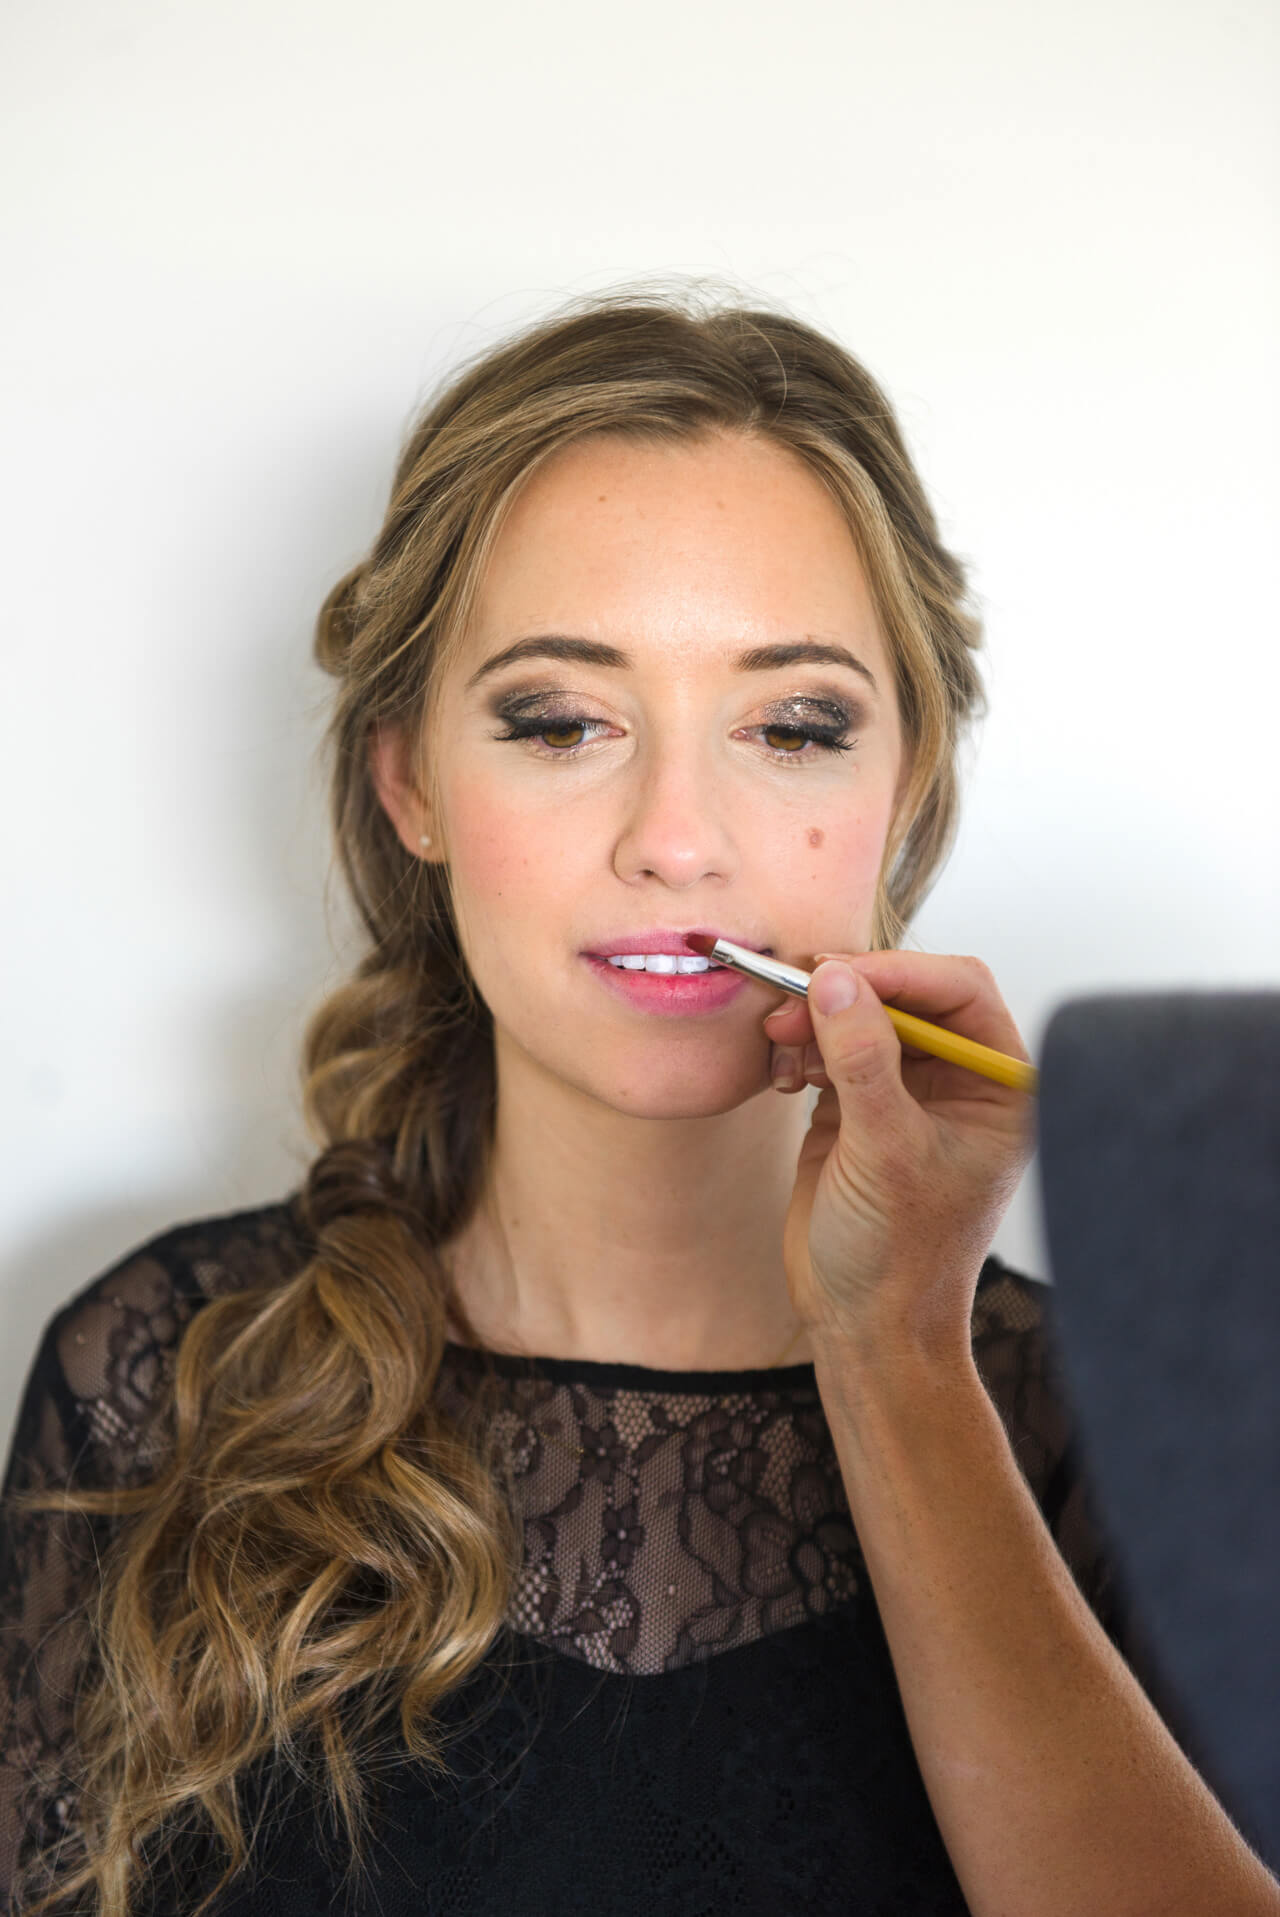 Date Night Makeup in Under 20 Minutes